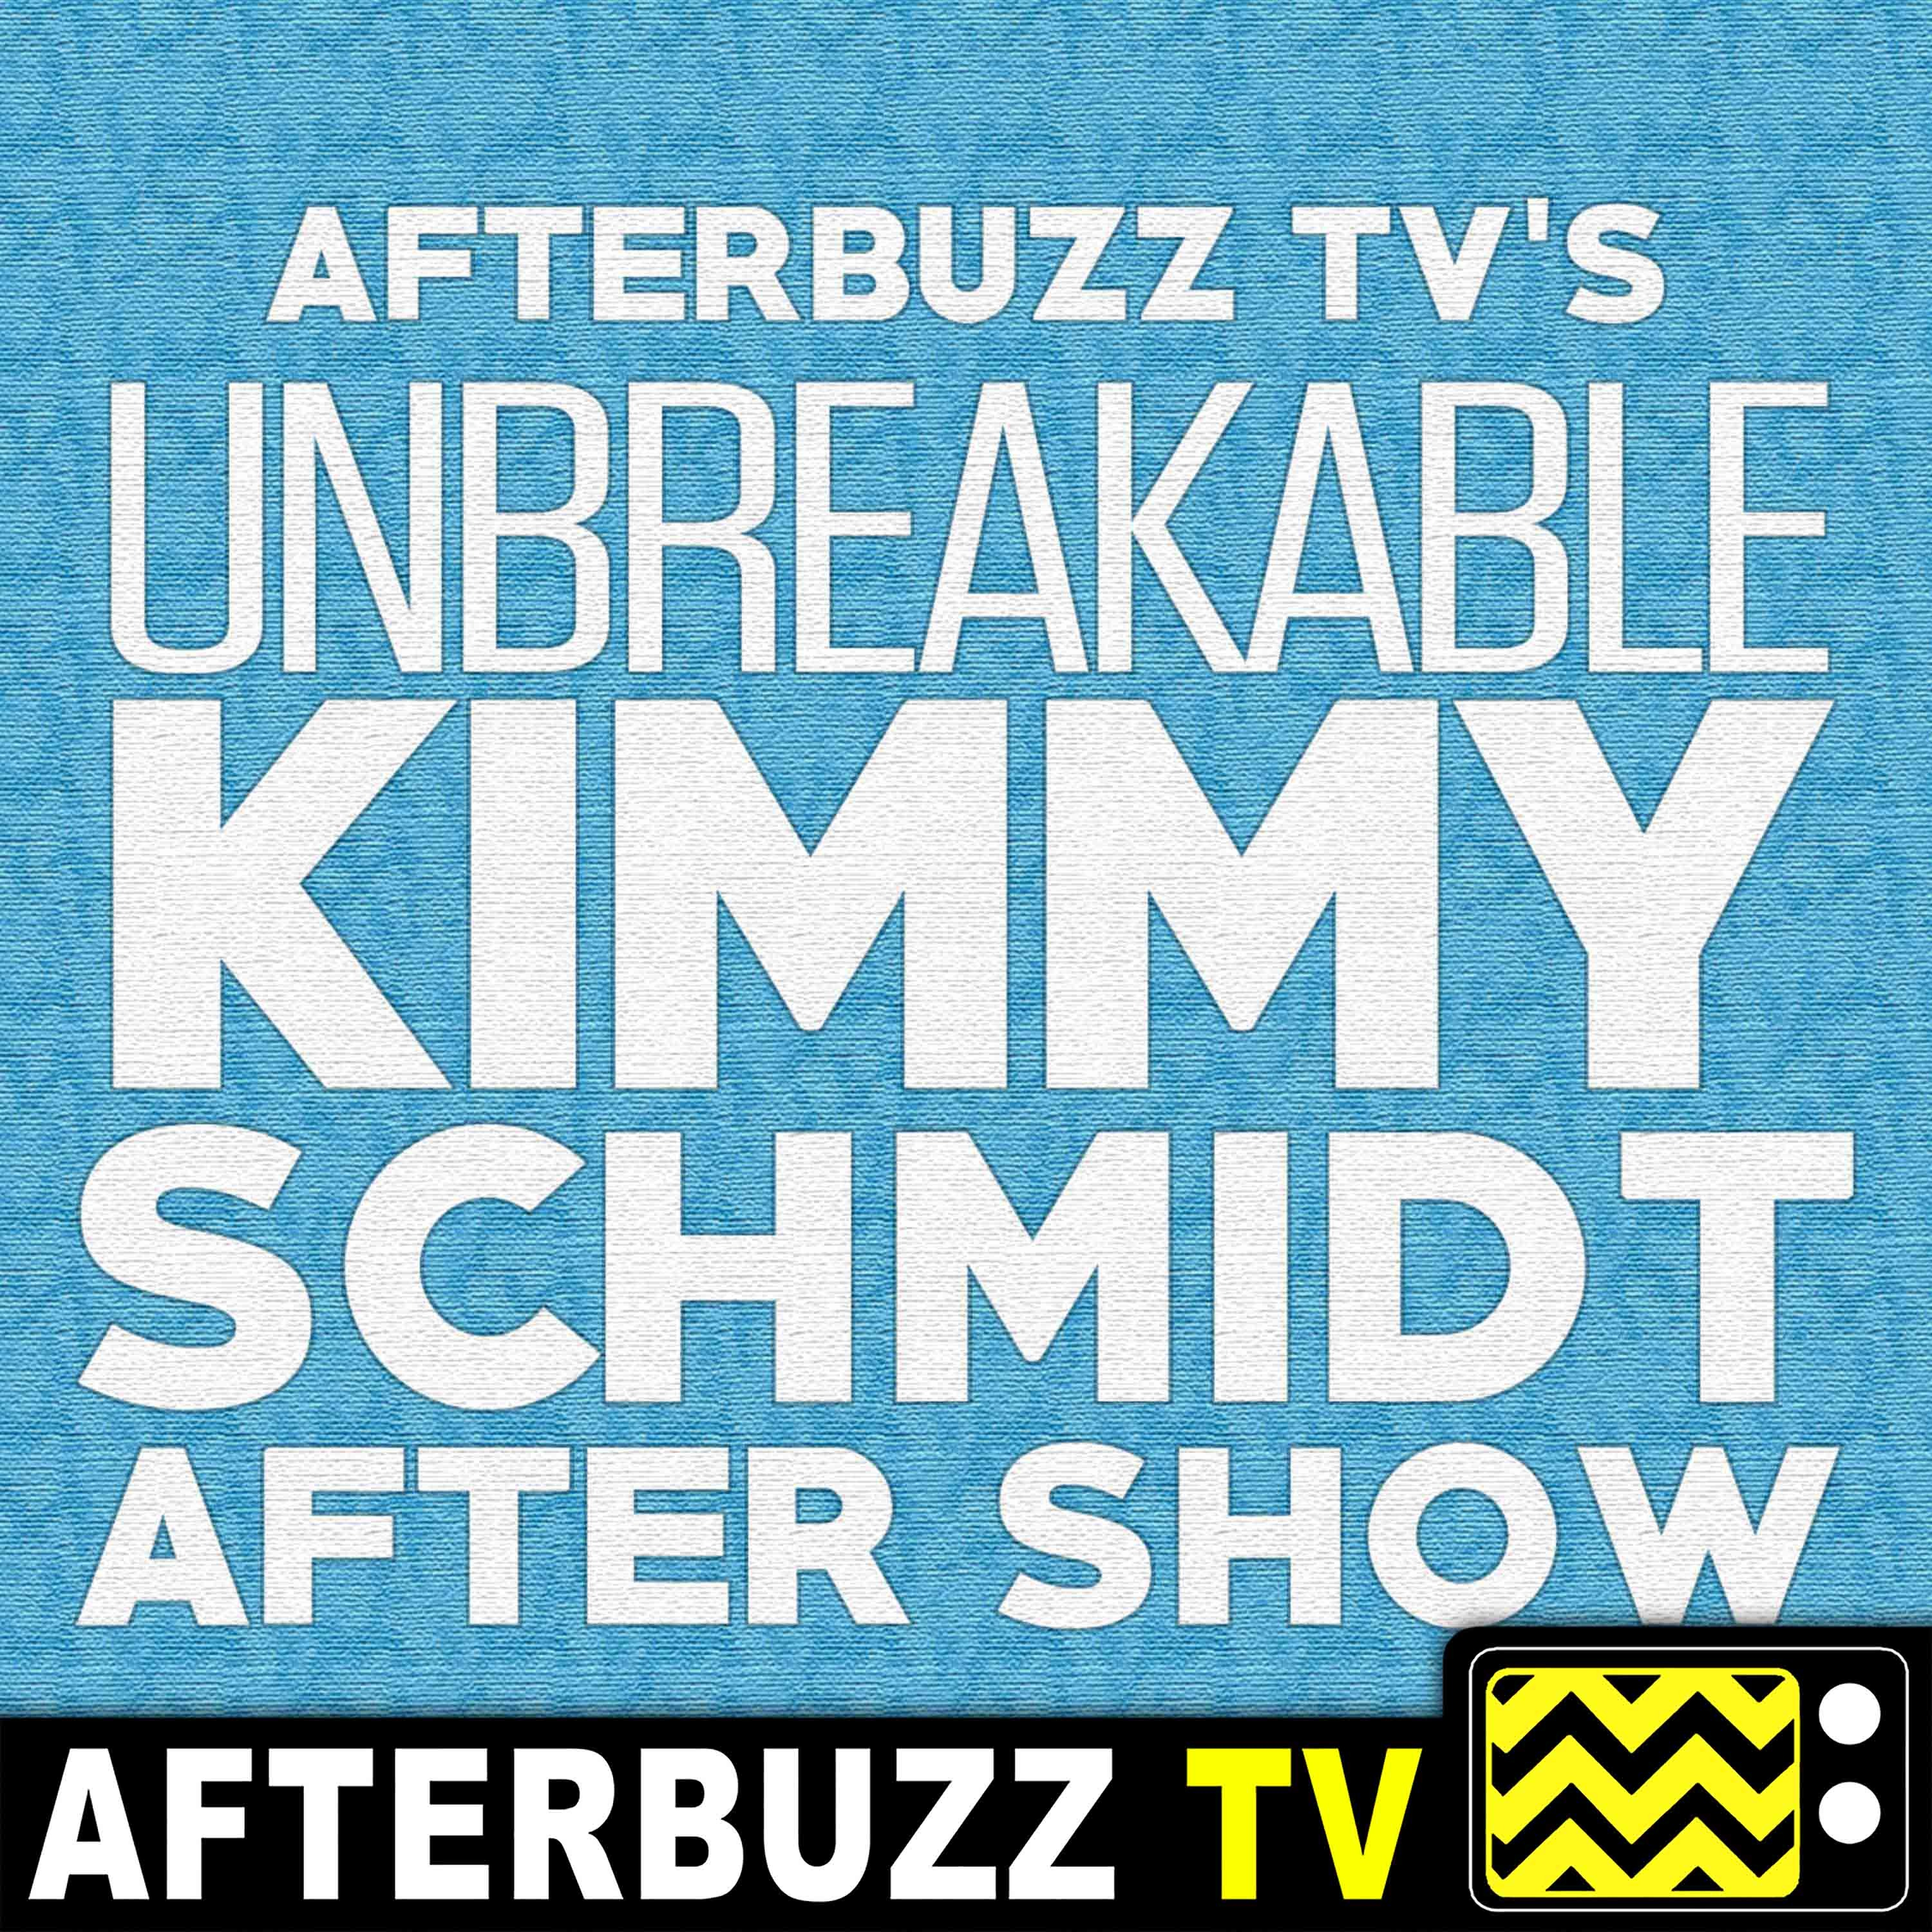 Unbreakable Kimmy Schmidt S:4 Kimmy Fights A Fire Monster; Kimmy Is in A Love Square E:7 & E:8 Revie